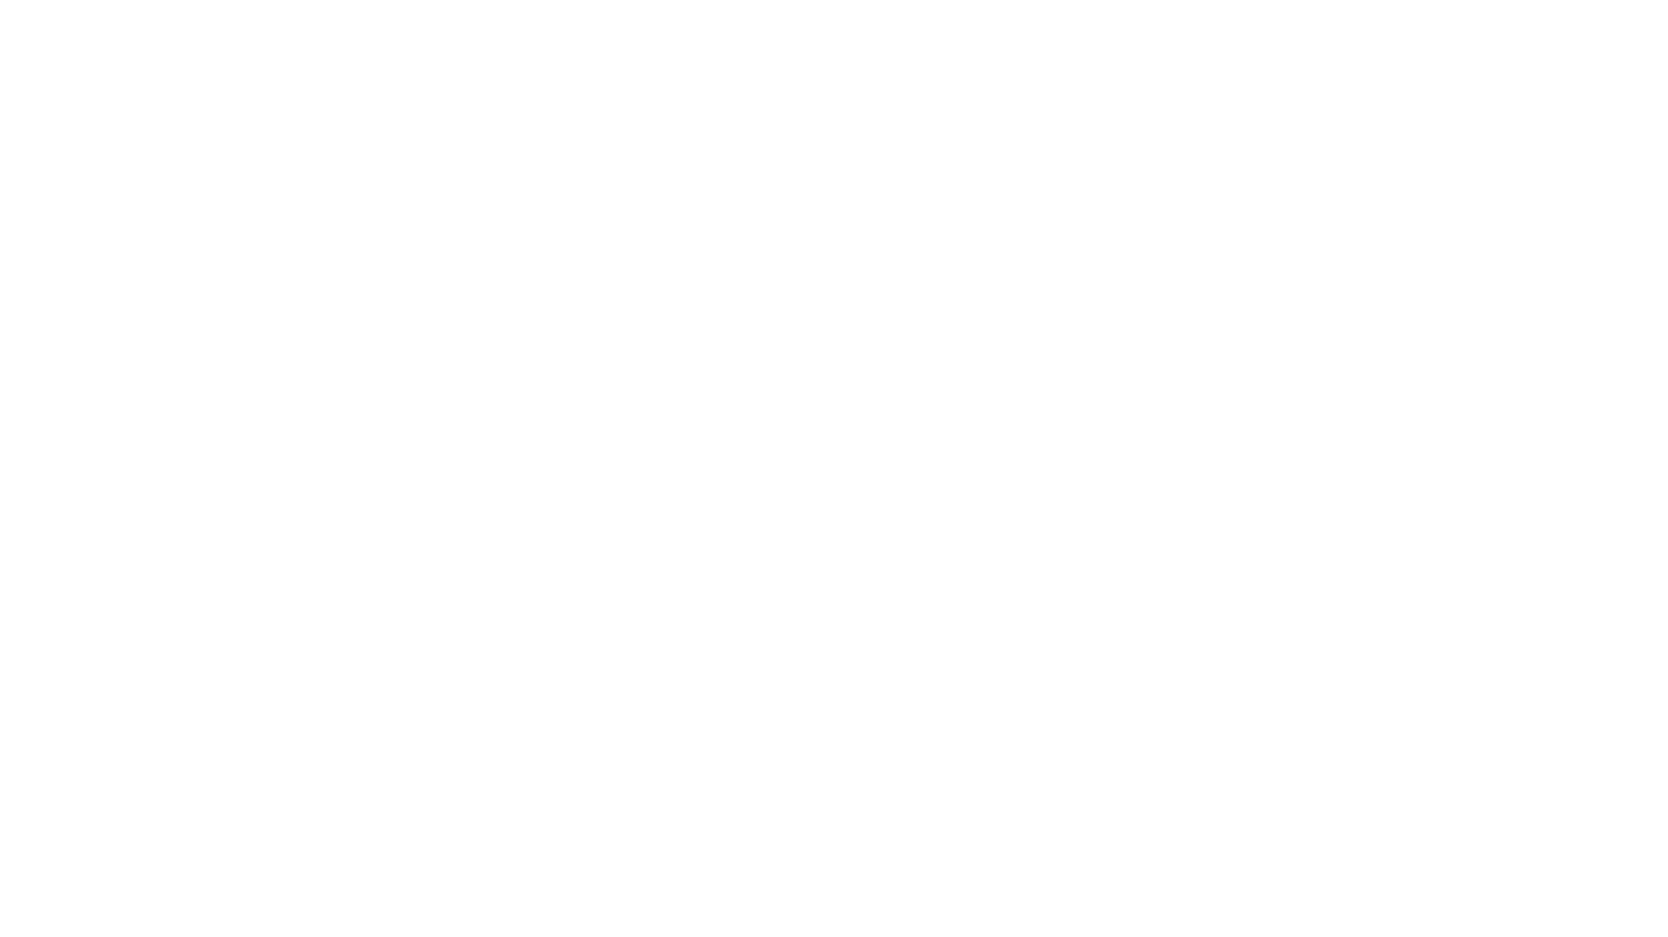 Clear logo for Magnolia Pointe